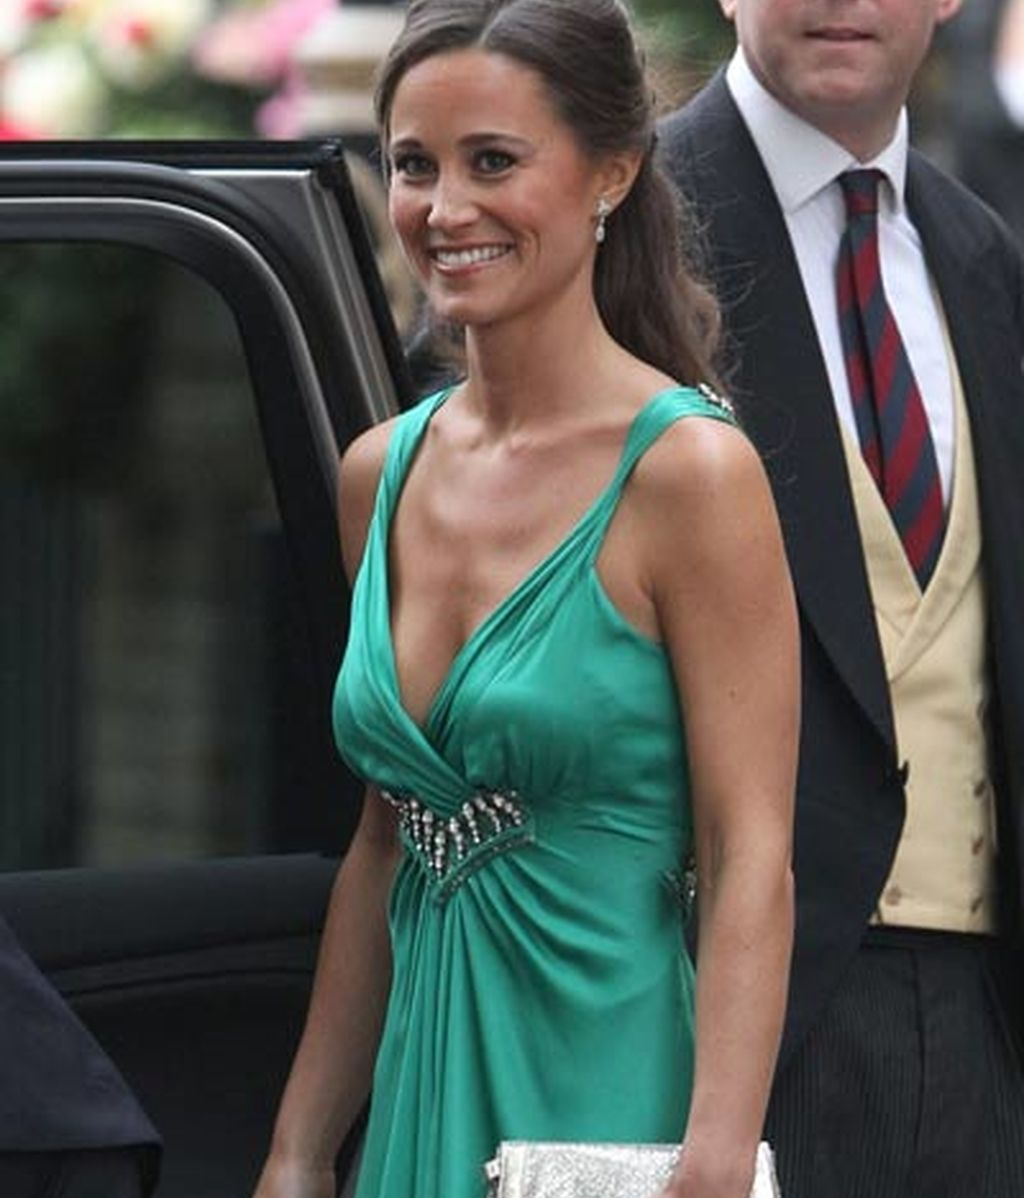 Pippa, hermana de Kate Middleton